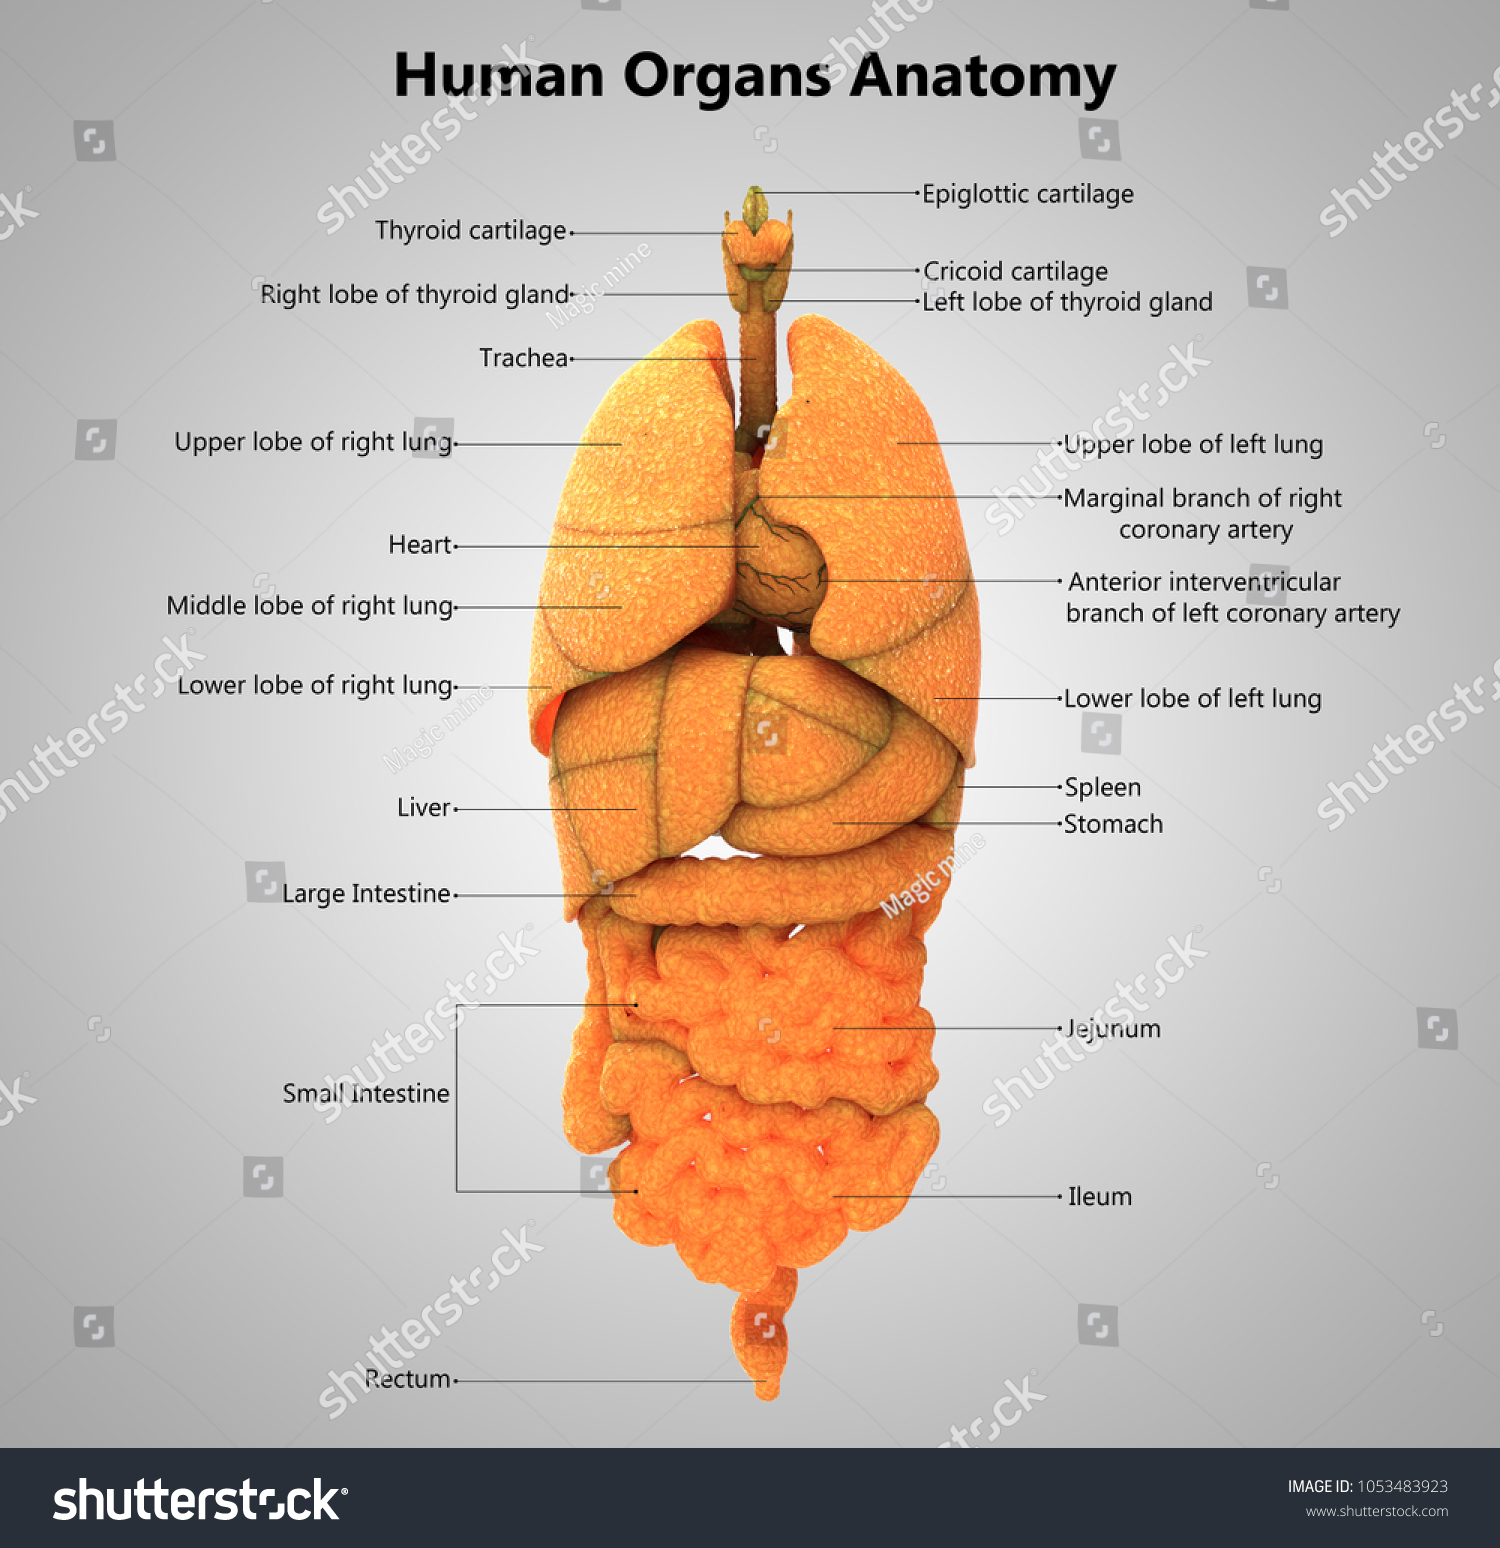 Human Body Organs Label Design Anatomy Stock Illustration 1053483923